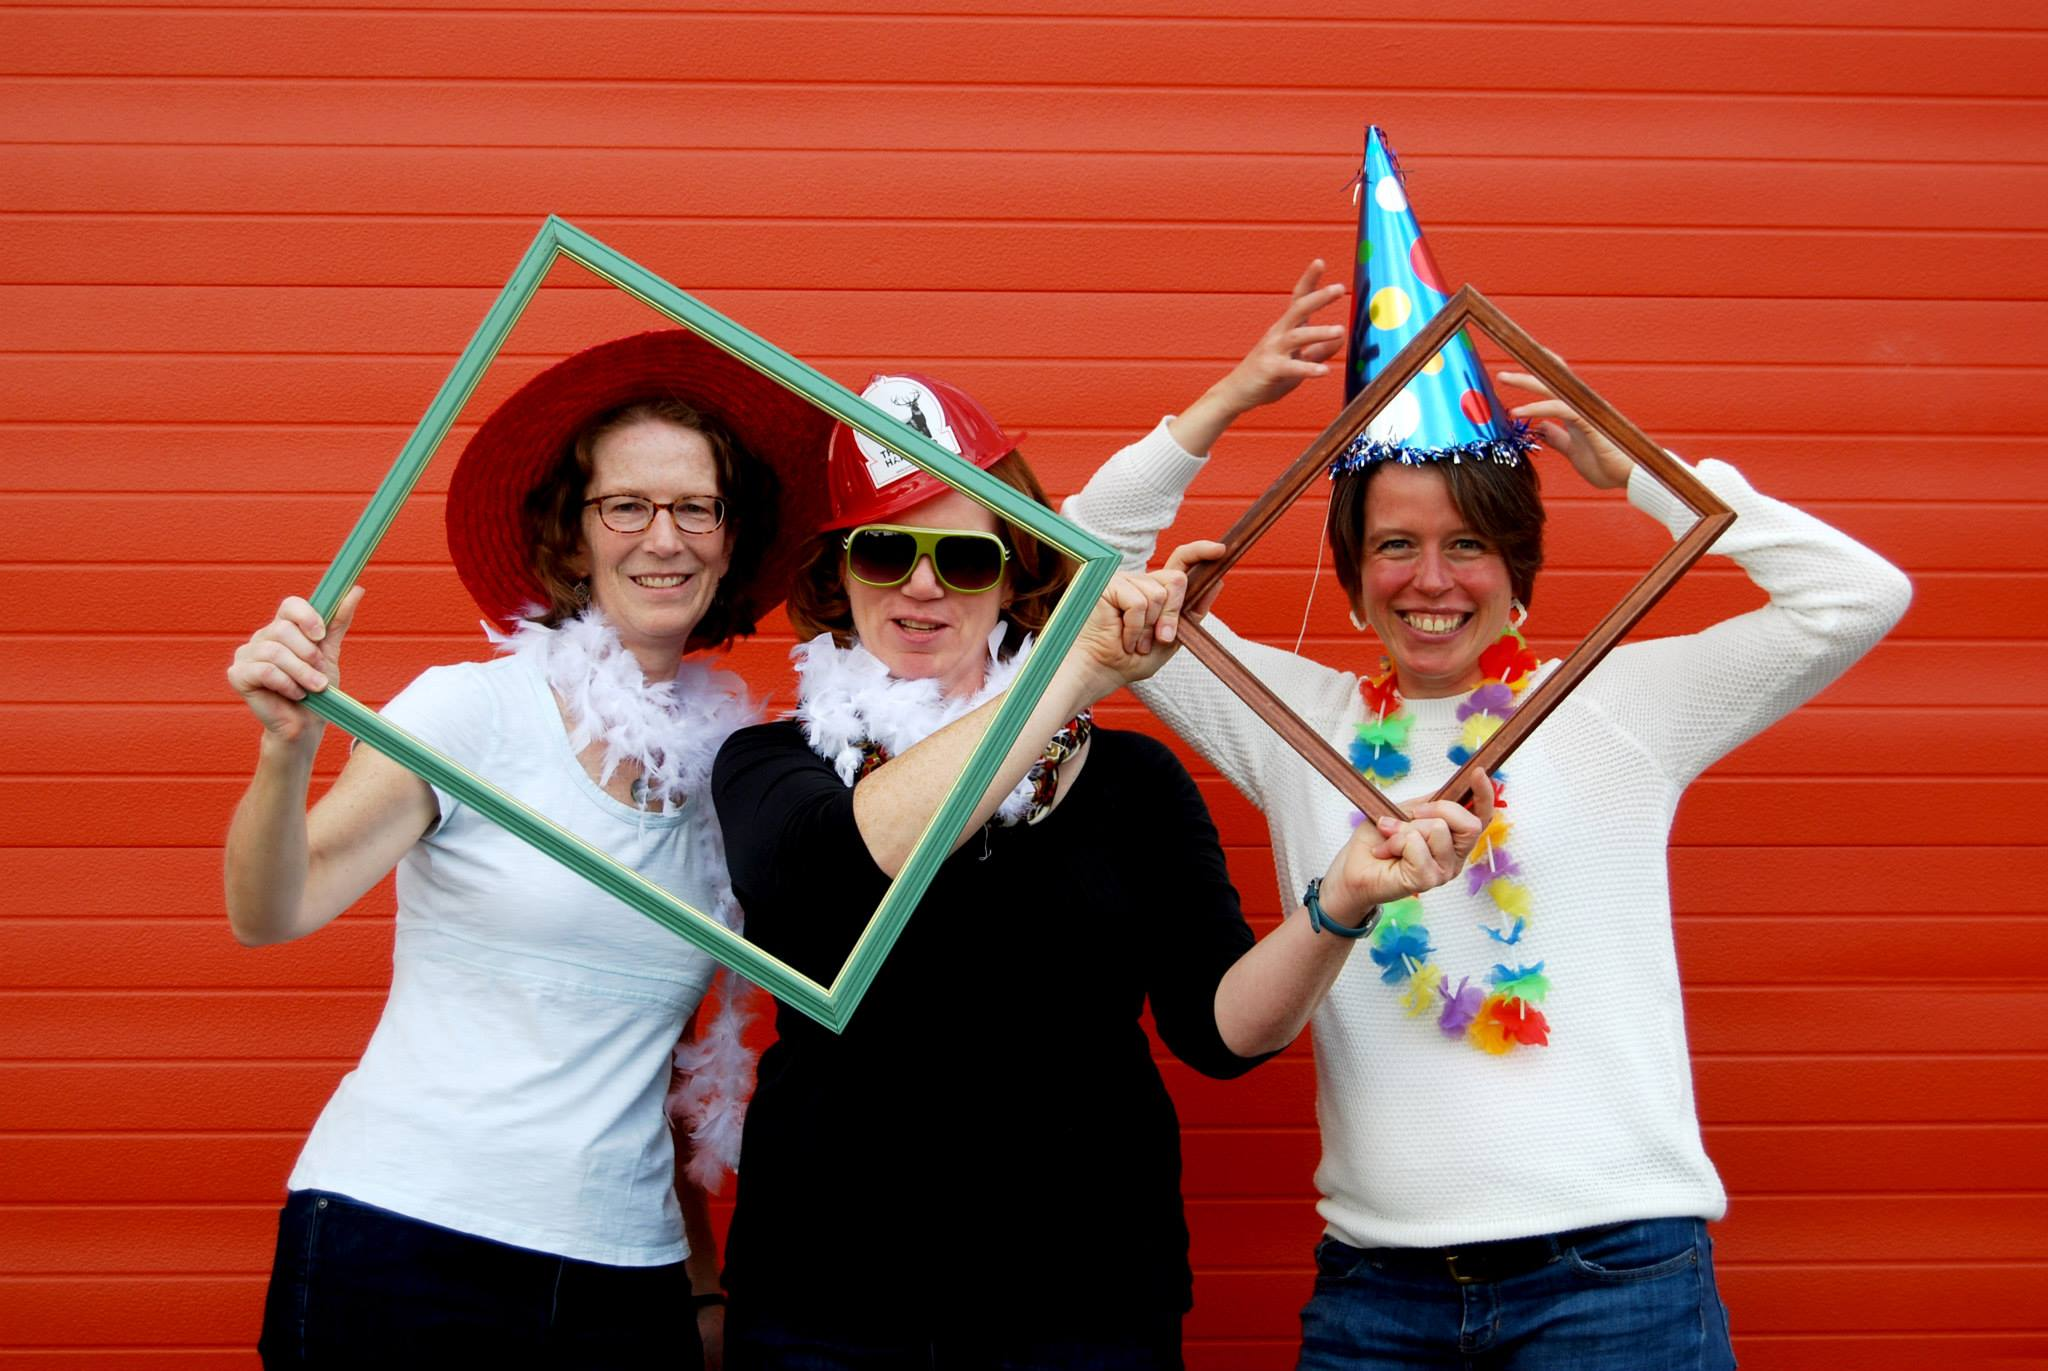 PhoPa Photobooth at East Bayside Block Party | October 2014